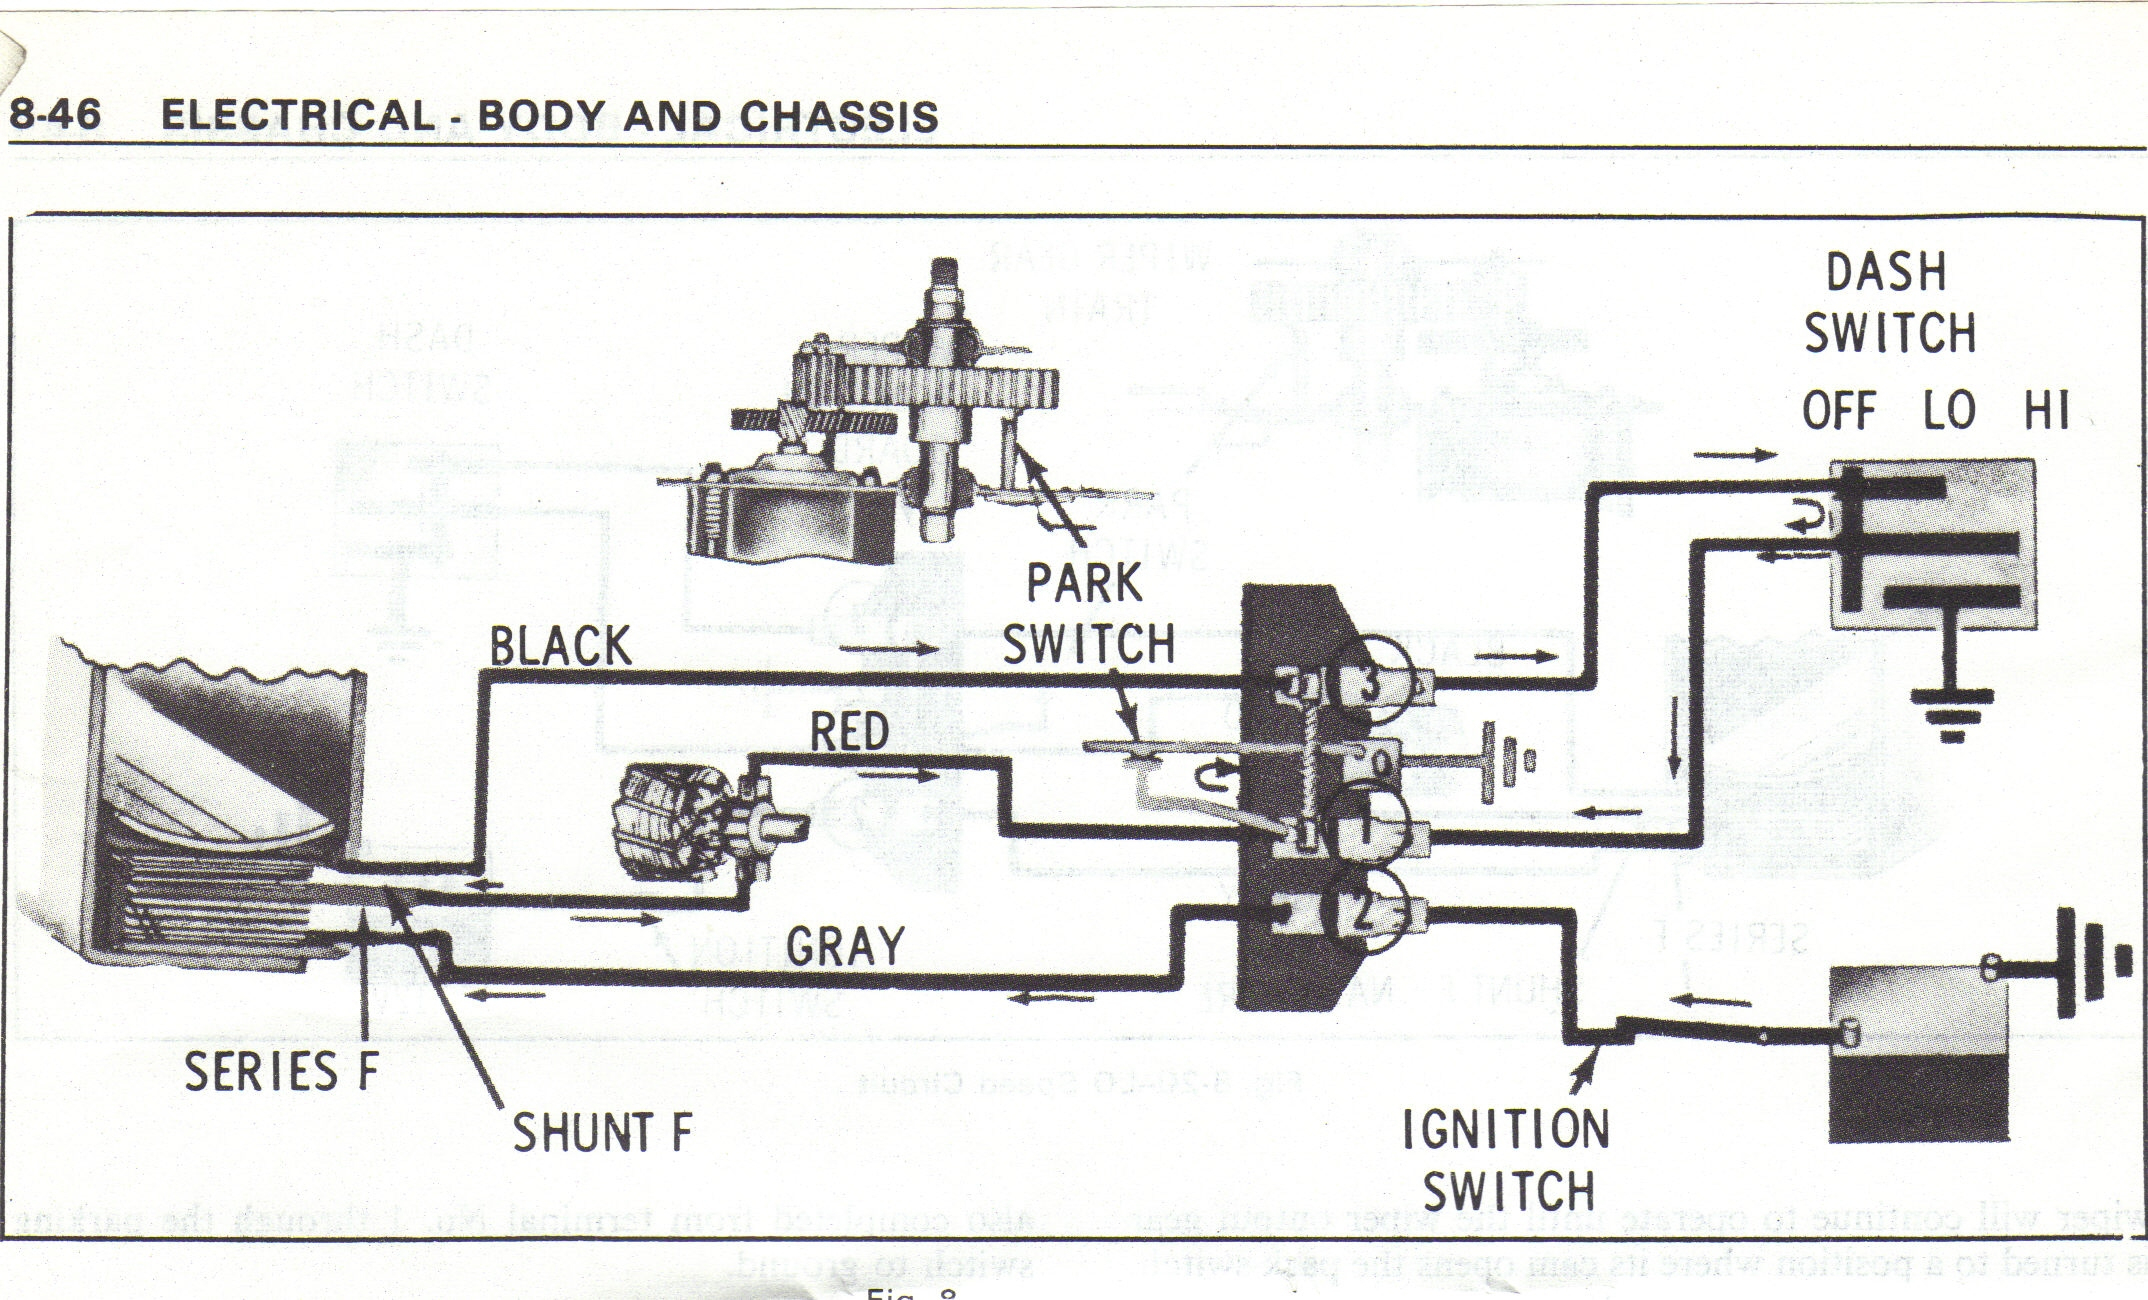 1968 Chevy Wiper Motor Wiring Diagram - Data Wiring Diagram Site - Wiper Motor Wiring Diagram Chevrolet